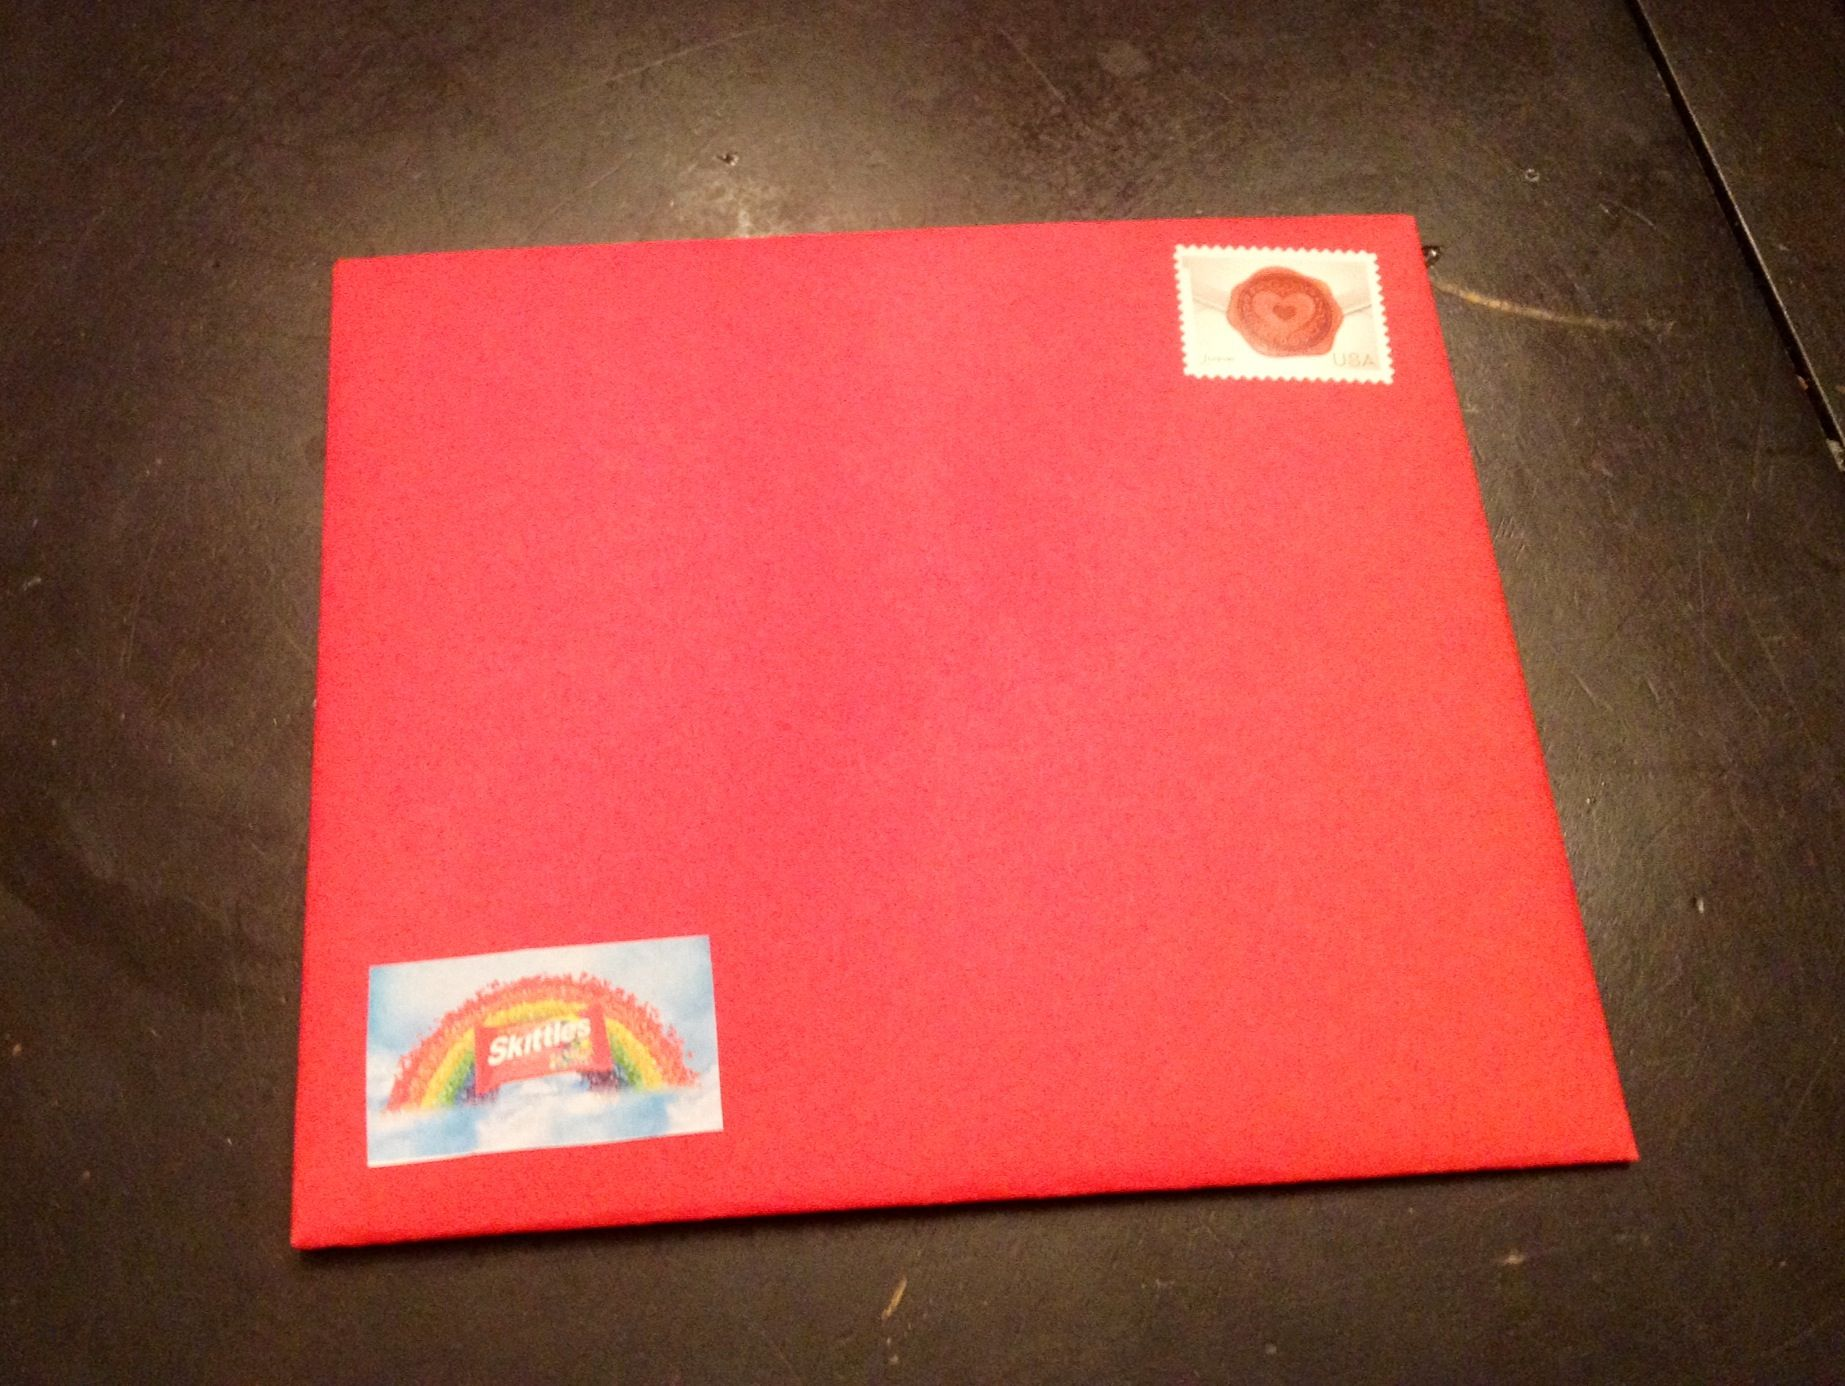 Home Made Envelope End Result With Taped On Skittles Logo To Continue Tie The